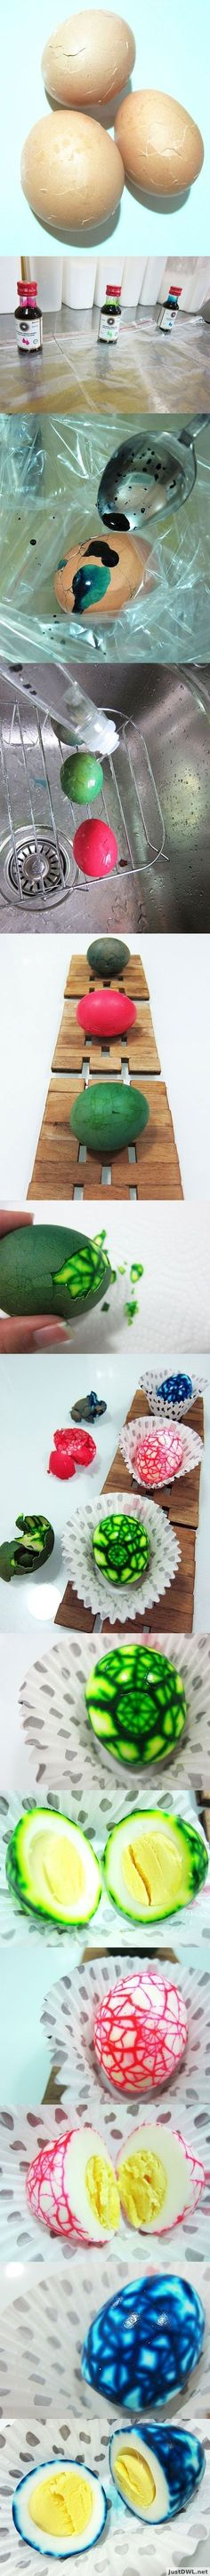 How I dye my Easter eggs